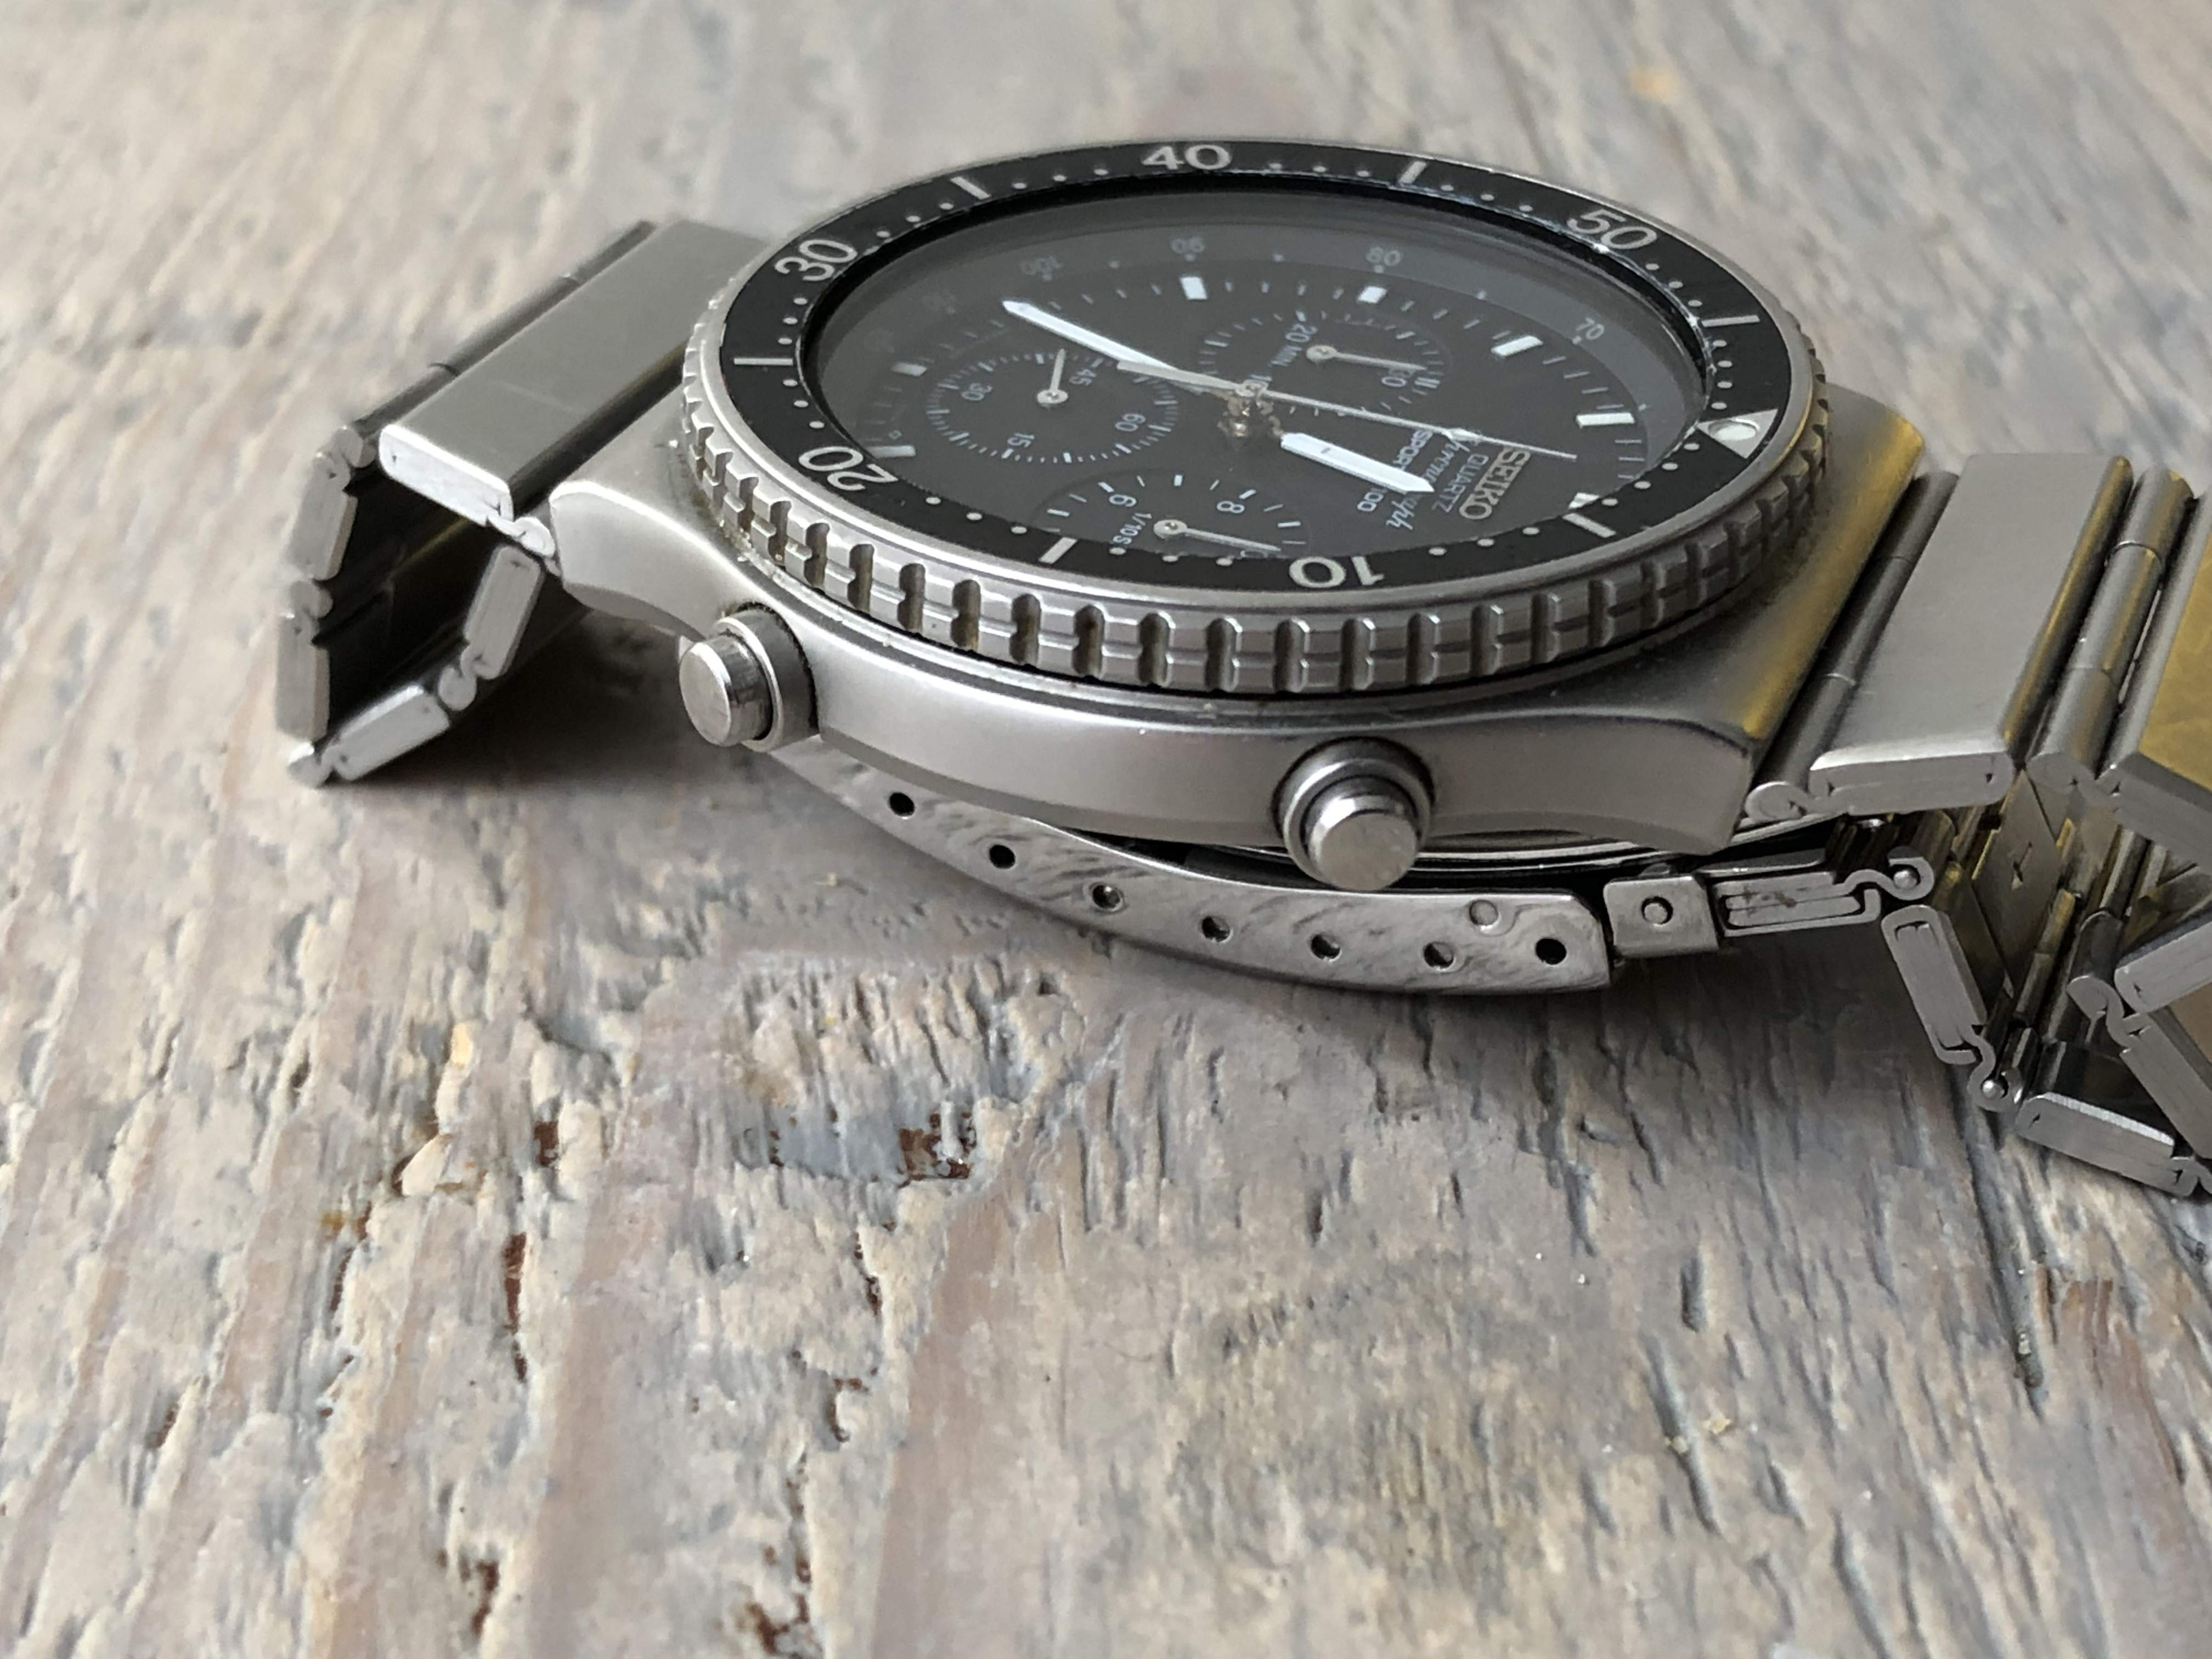 Seiko Quartz Chronograph 7A28-7049 (Sold/Consignment)